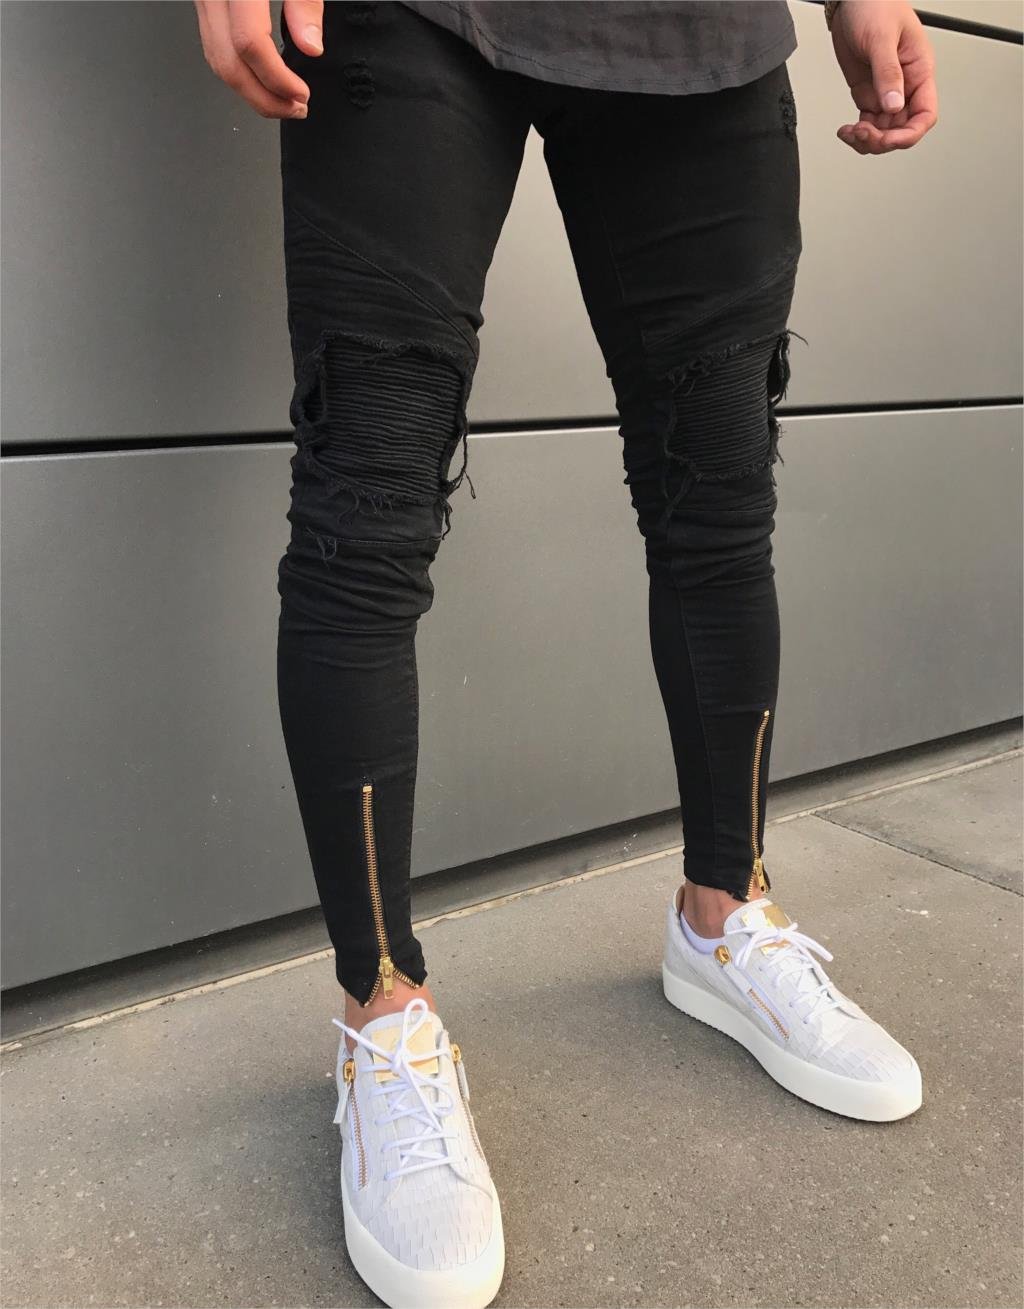 Good Quality New 2019 Men's Hip-hop Hole Pants Fashion Jeans Slim Men Jeans Big Size Brand Jeans Skinny Stretch Slim Fit Pants